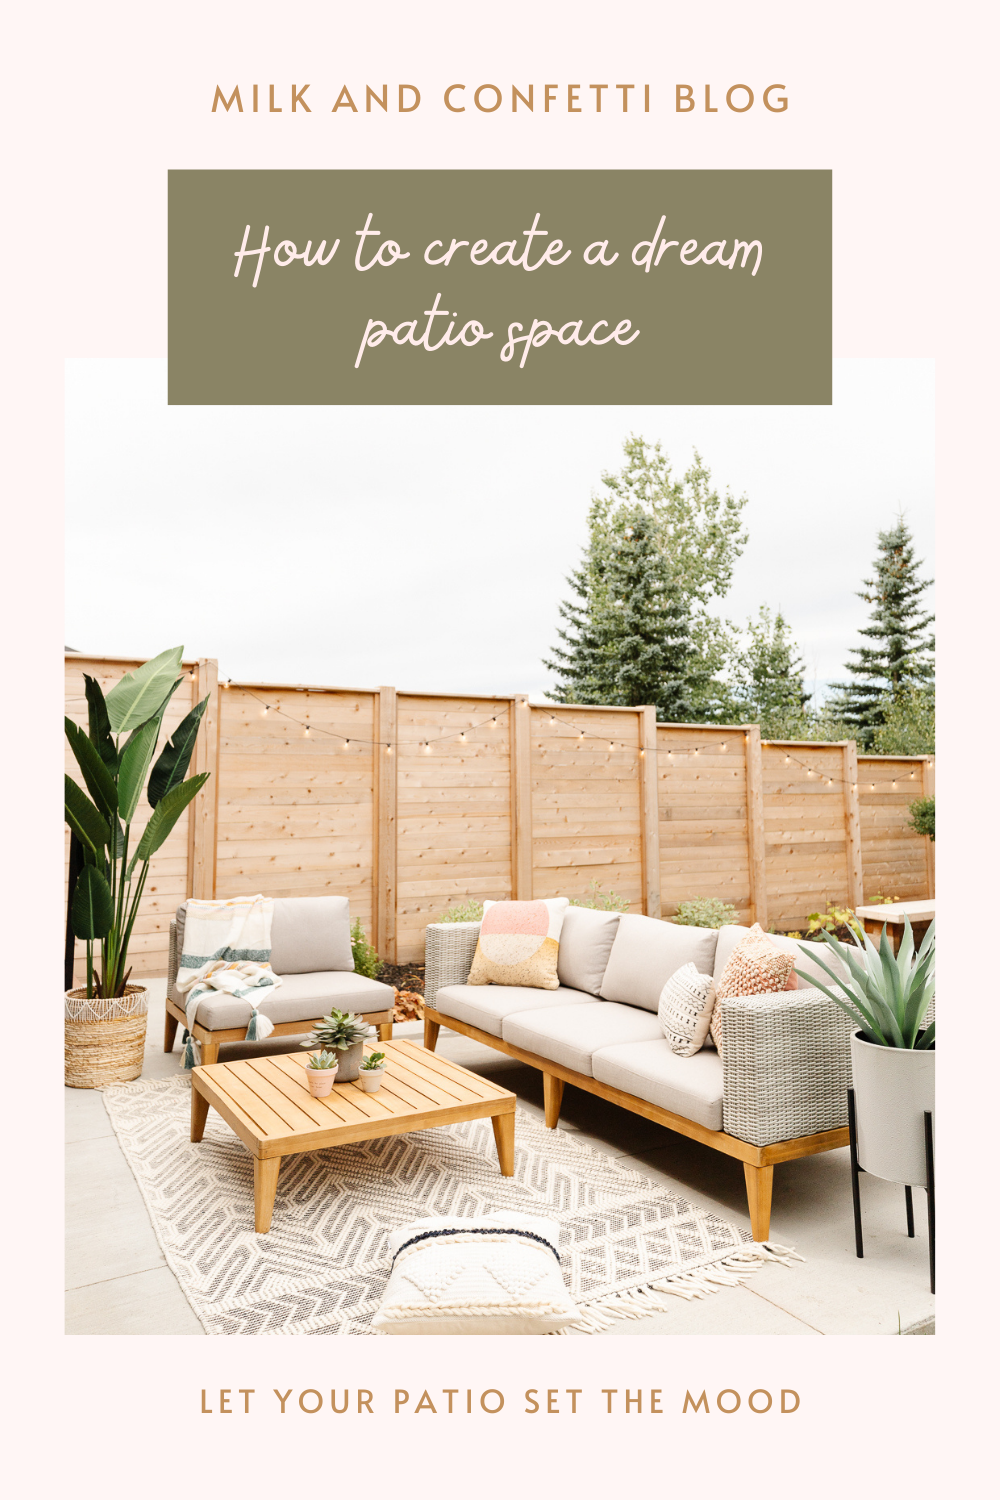 Modern outdoor patio wood fence with string lights neutral wicker sofa wood legs with beige fabric patterned throw cushions beige and black area rug teak coffee table with succulent pots black metal pot stand with aloe plant chair with striped throw blanket